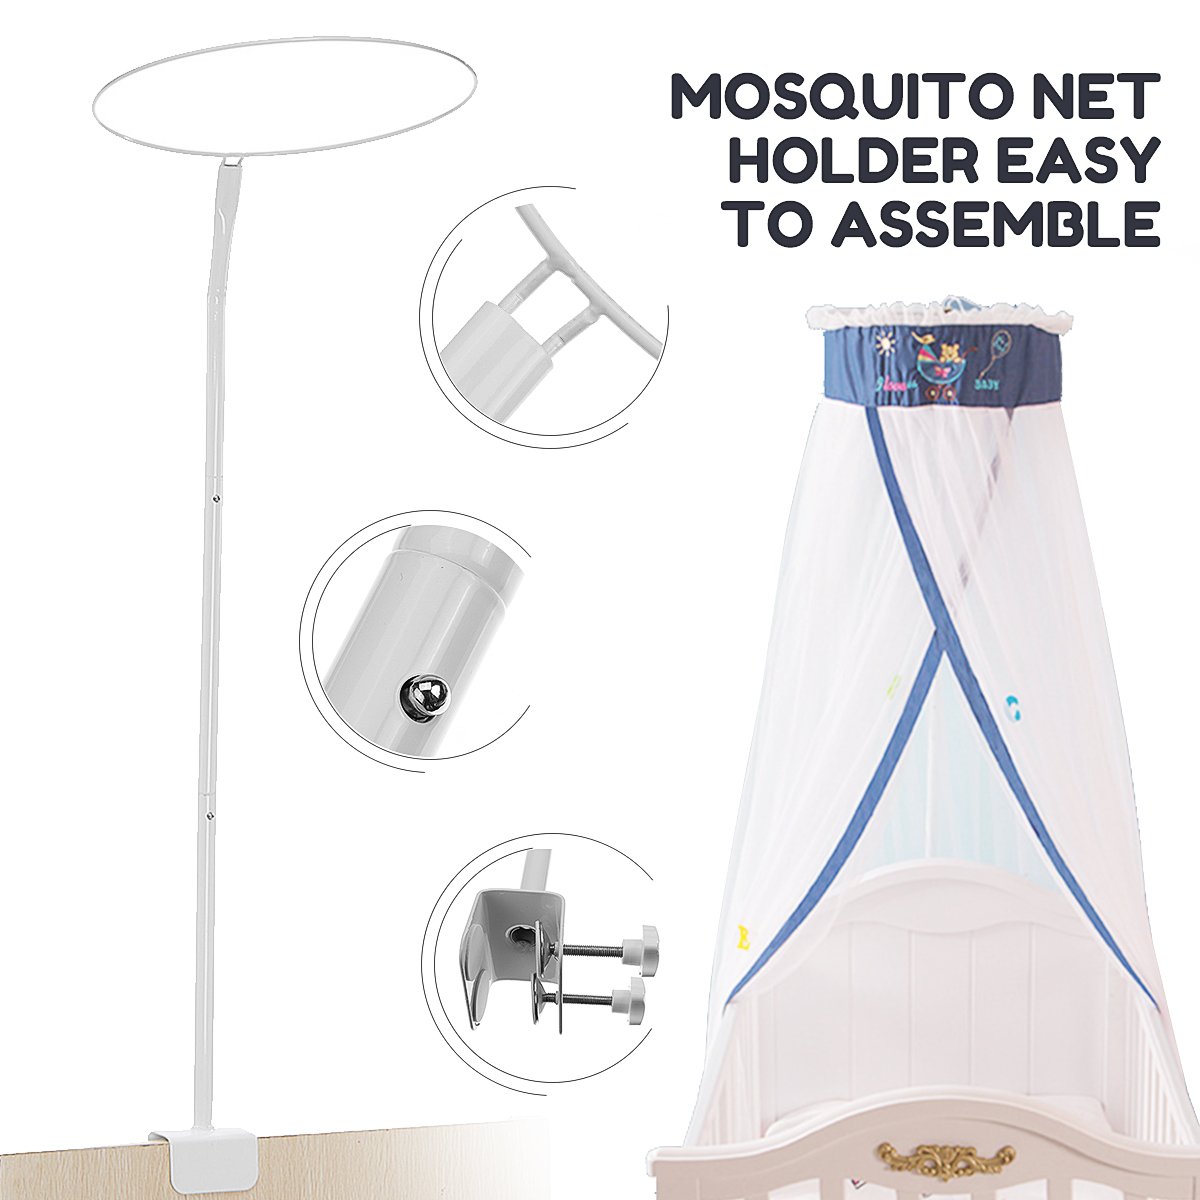 Summer Mosquito Net Stand Crib Net Holder Baby Crib Mosquito Netting Holder Universal Canopy Drape Holder Bed Support